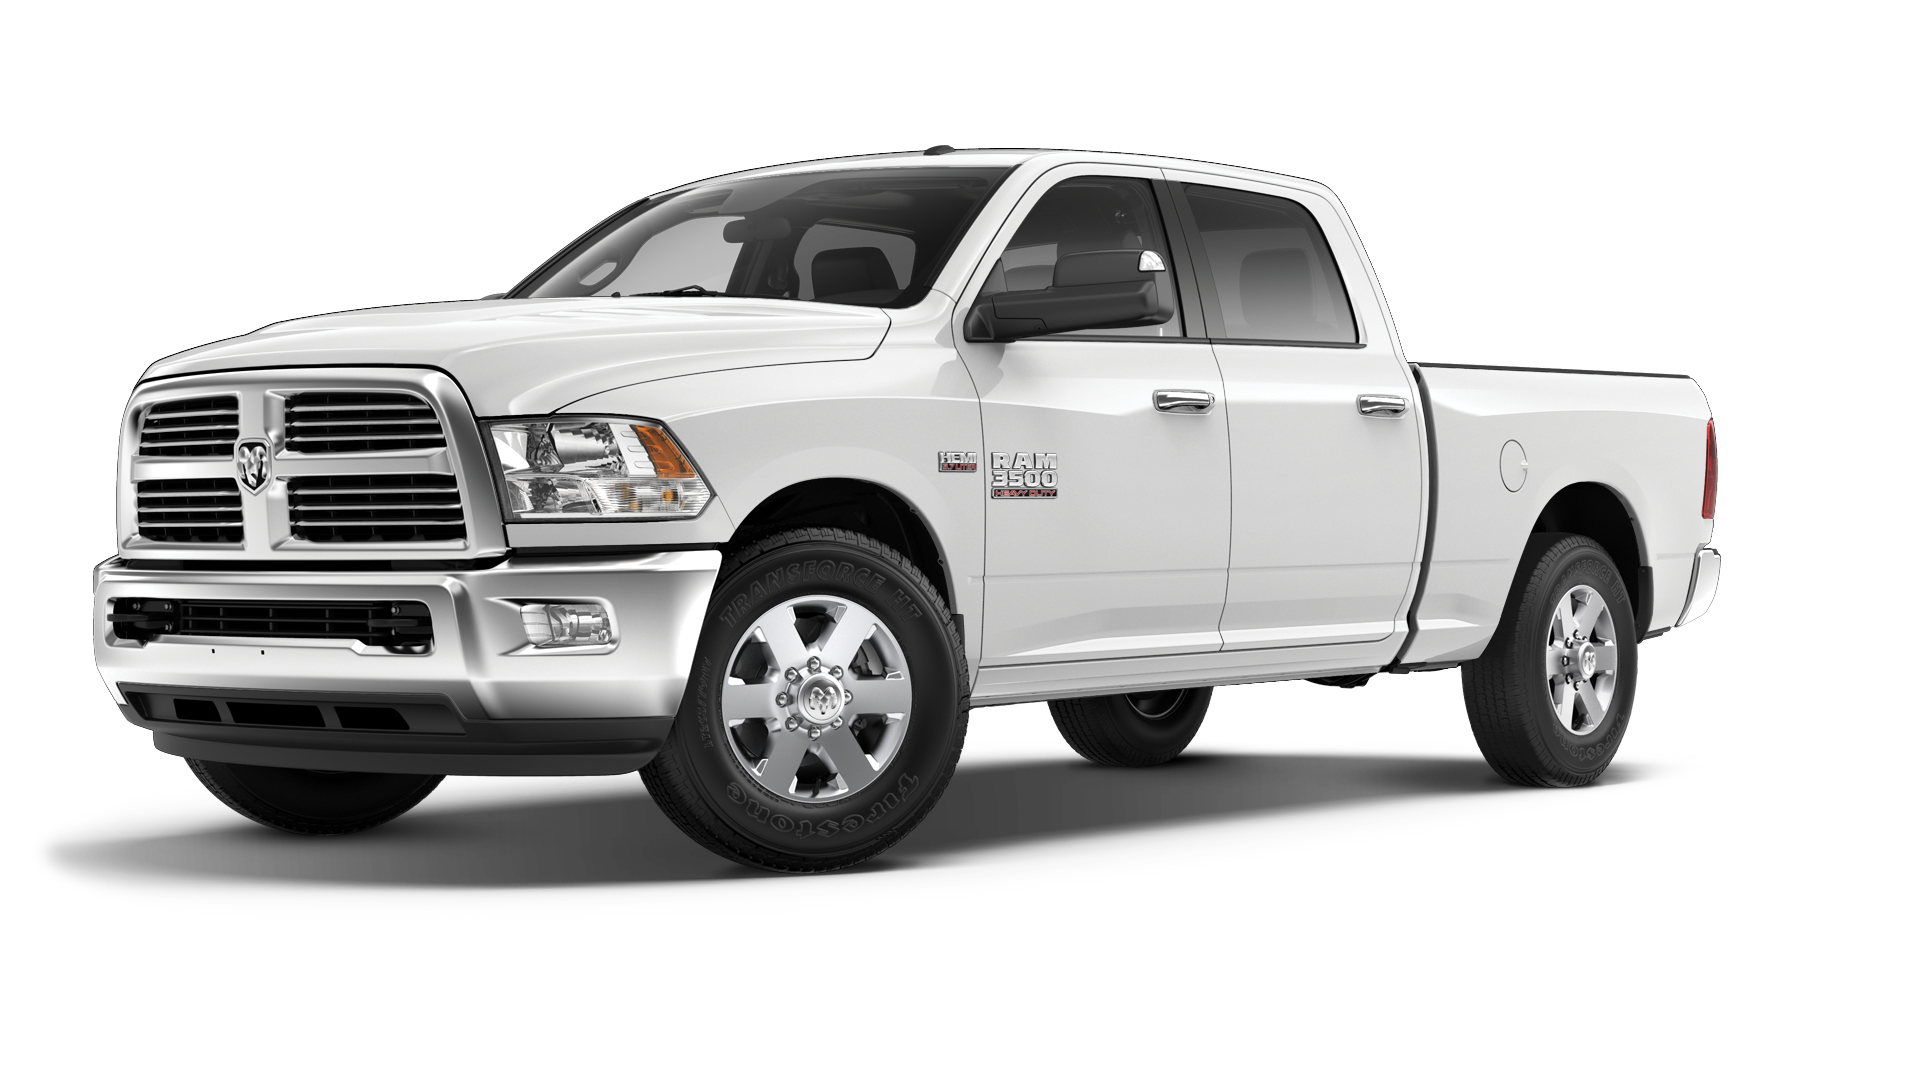 Pin by freepngclipart on Images Pickup trucks, Dodge ram